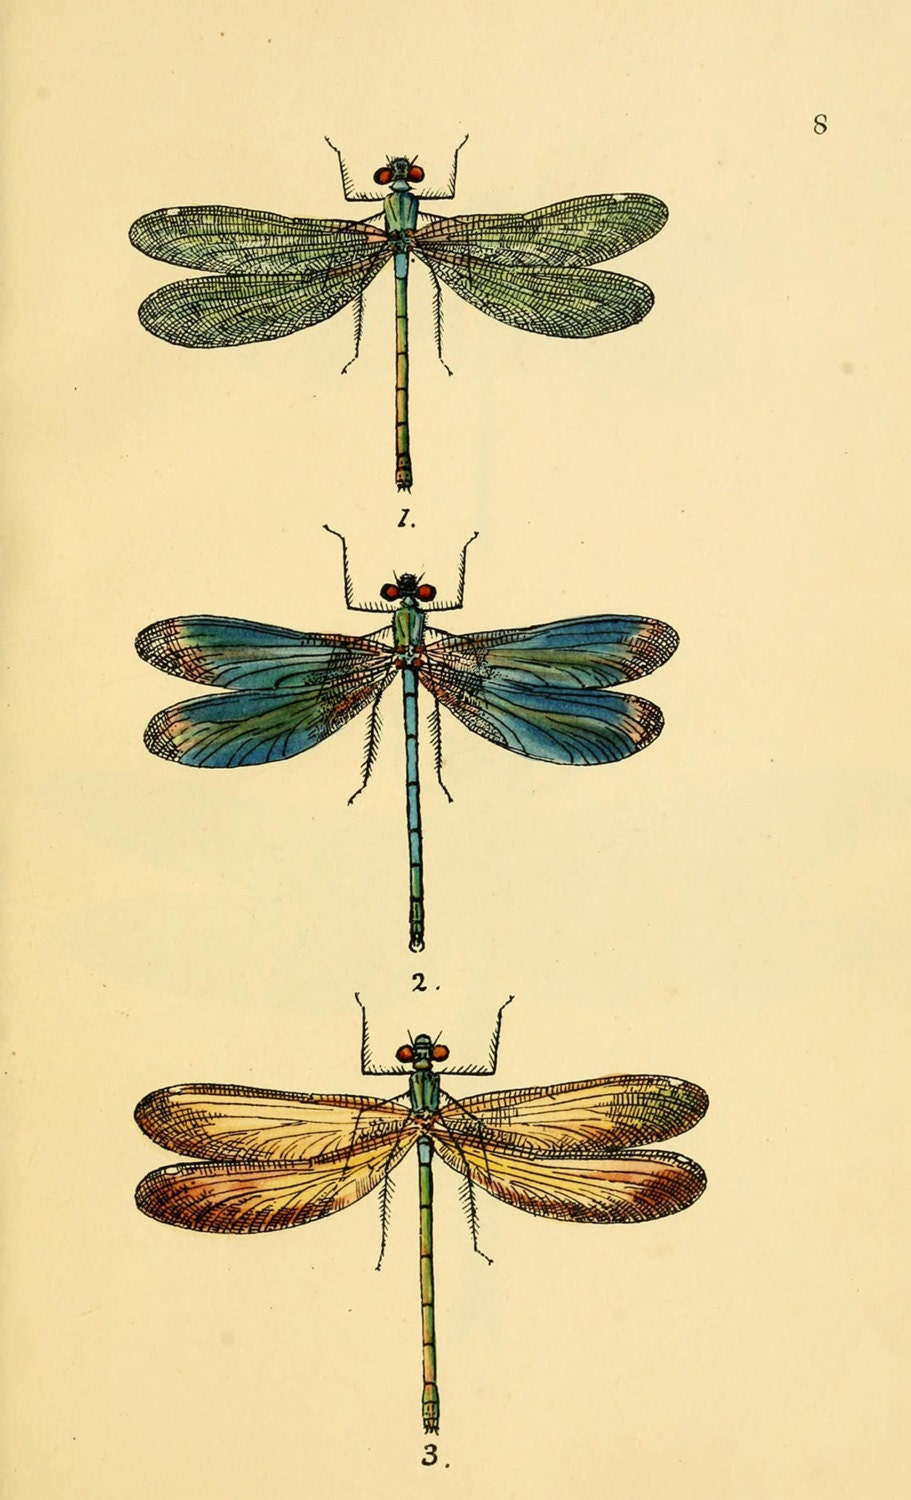 dragonfly art print an antique scientific illustration